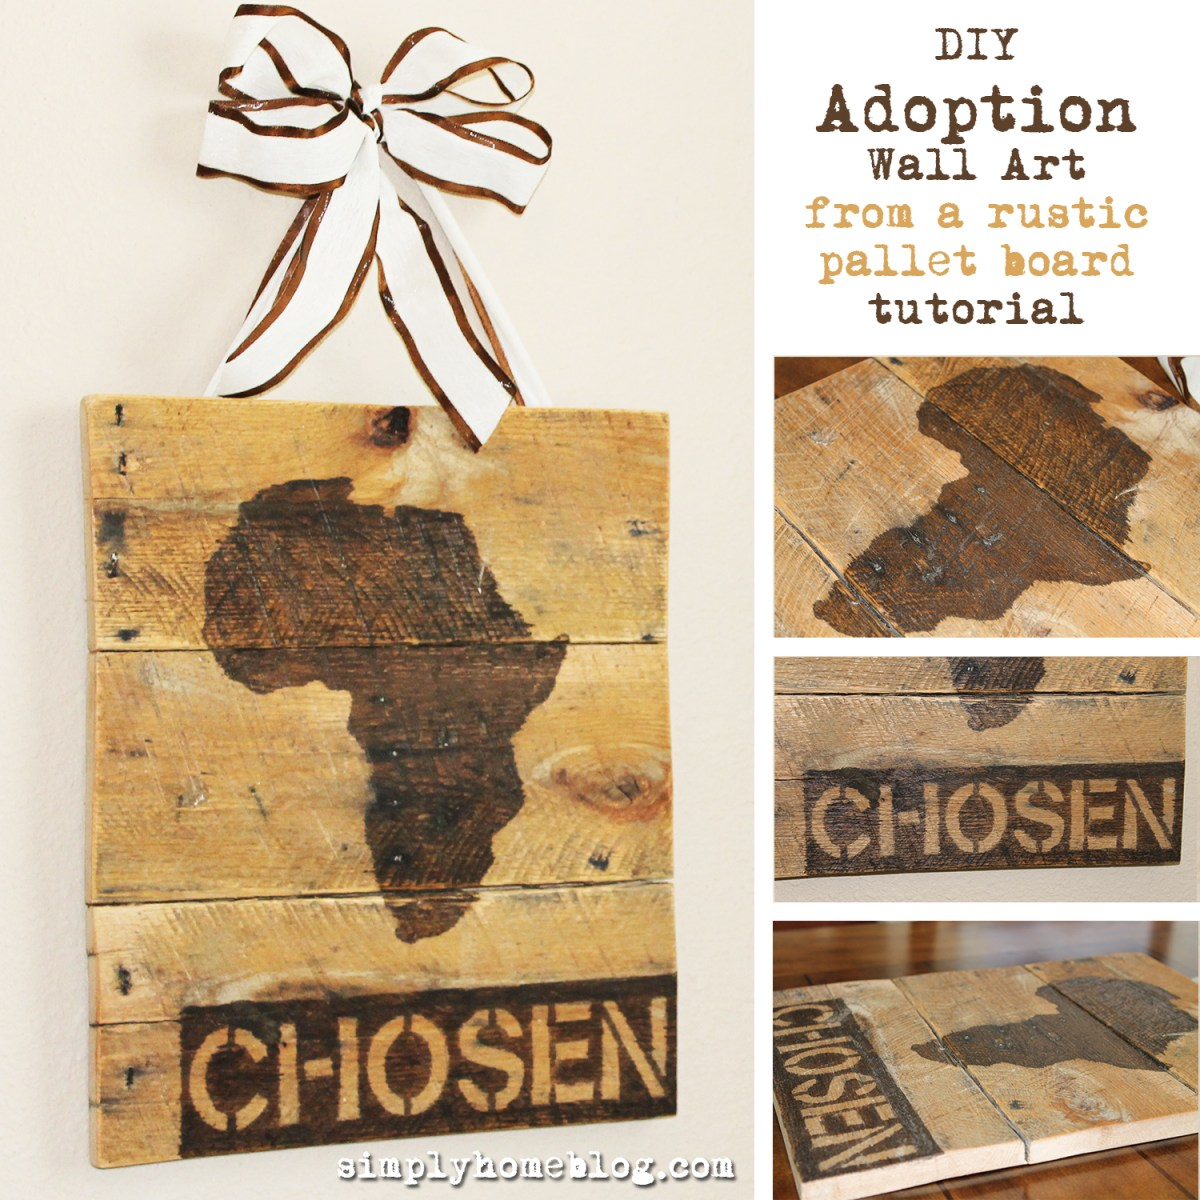 DIY Adoption Wall Art Tutorial Using a Rustic Pallet Board